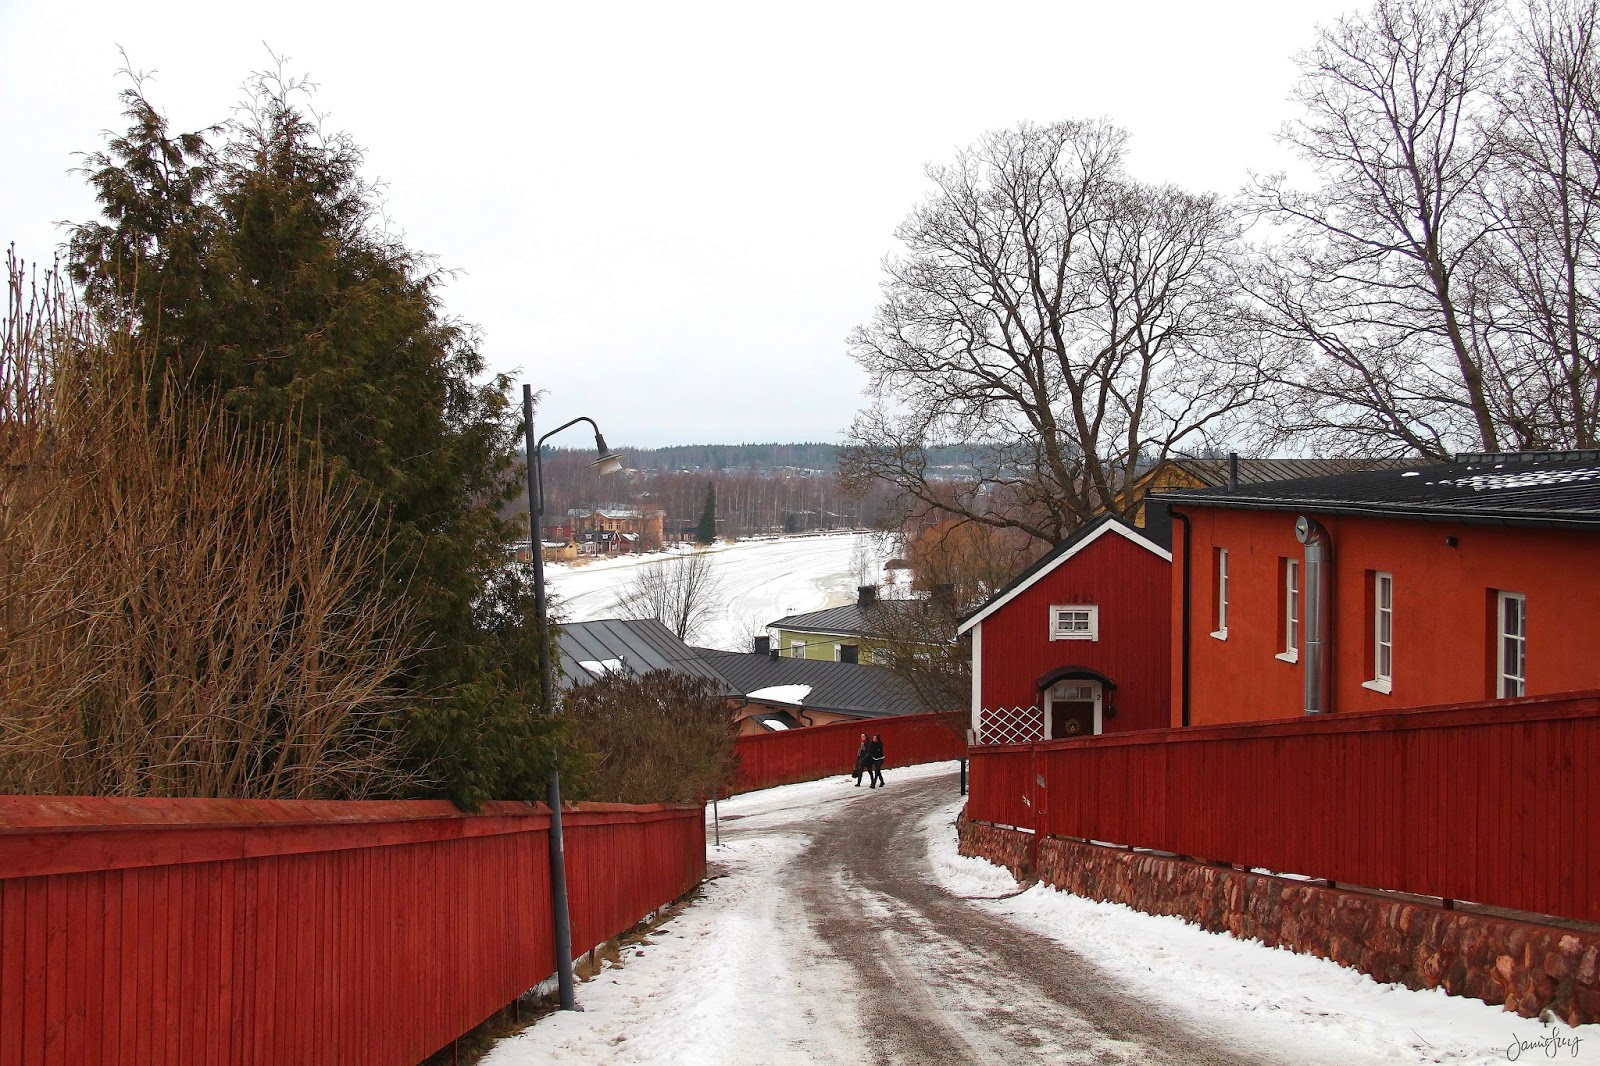 Red Houses and a Street in Porvoo, Finland